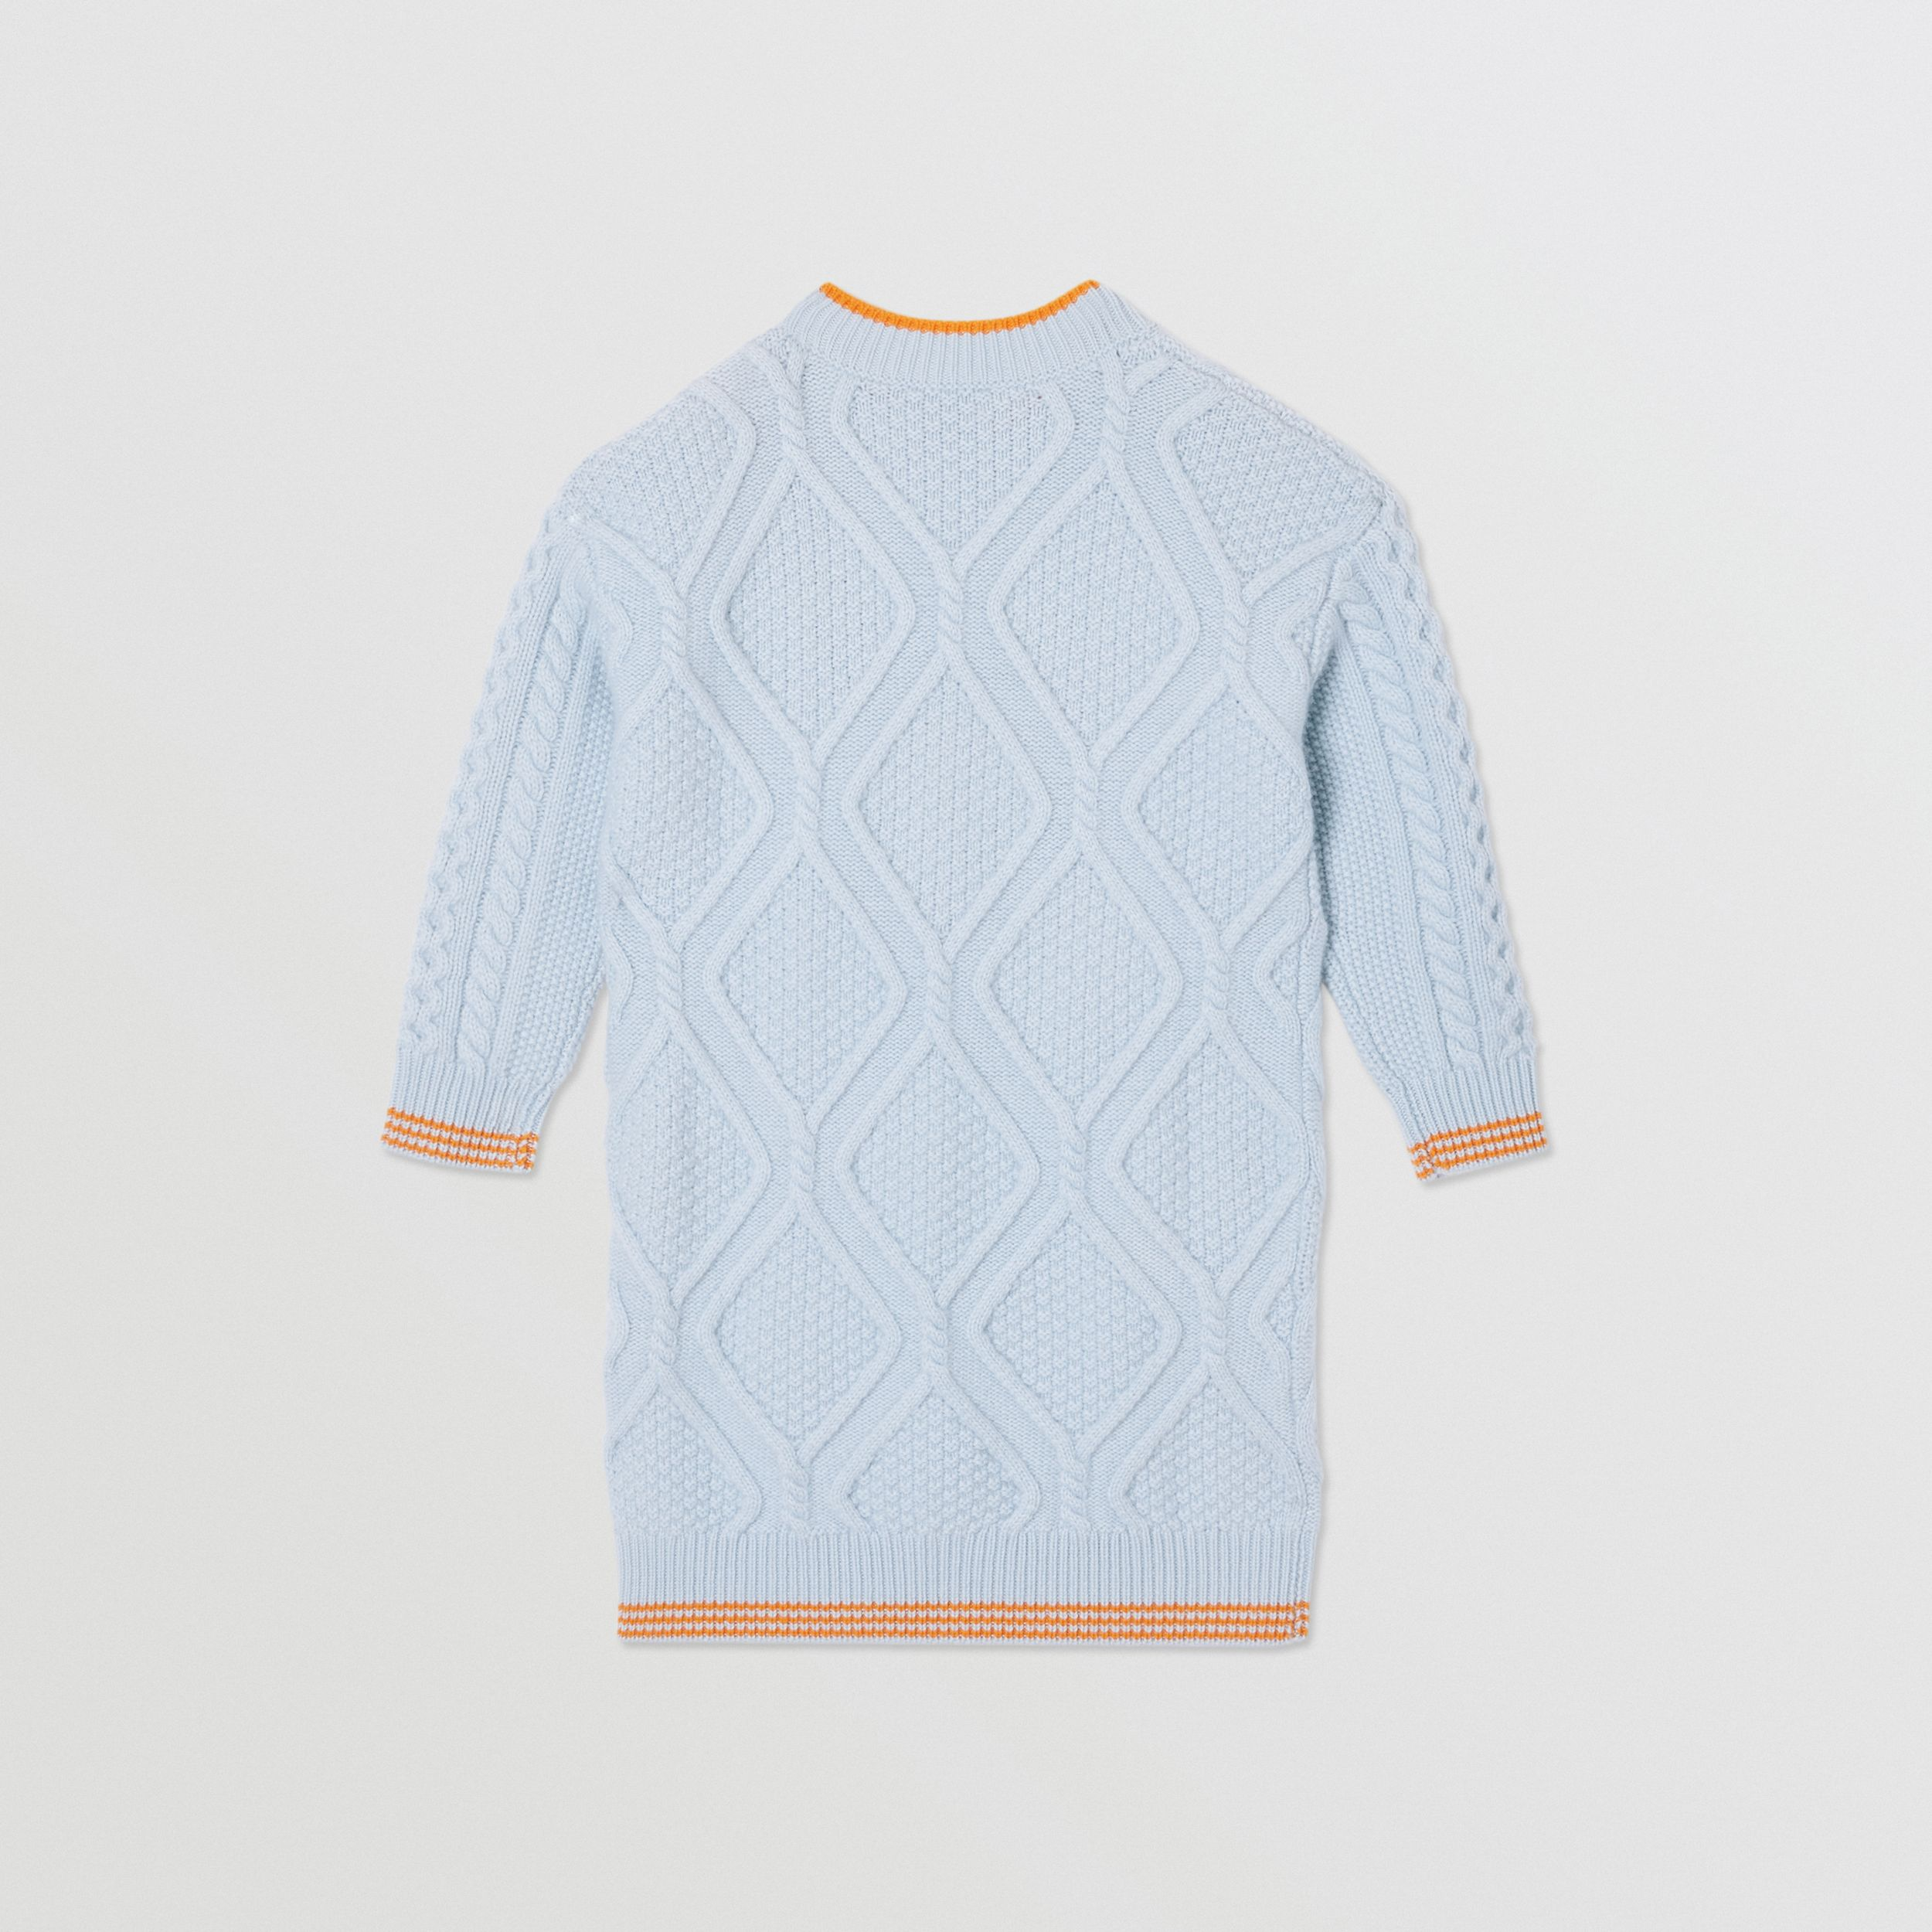 Unicorn Cable Knit Wool Cashmere Sweater Dress in Light Blue | Burberry - 4